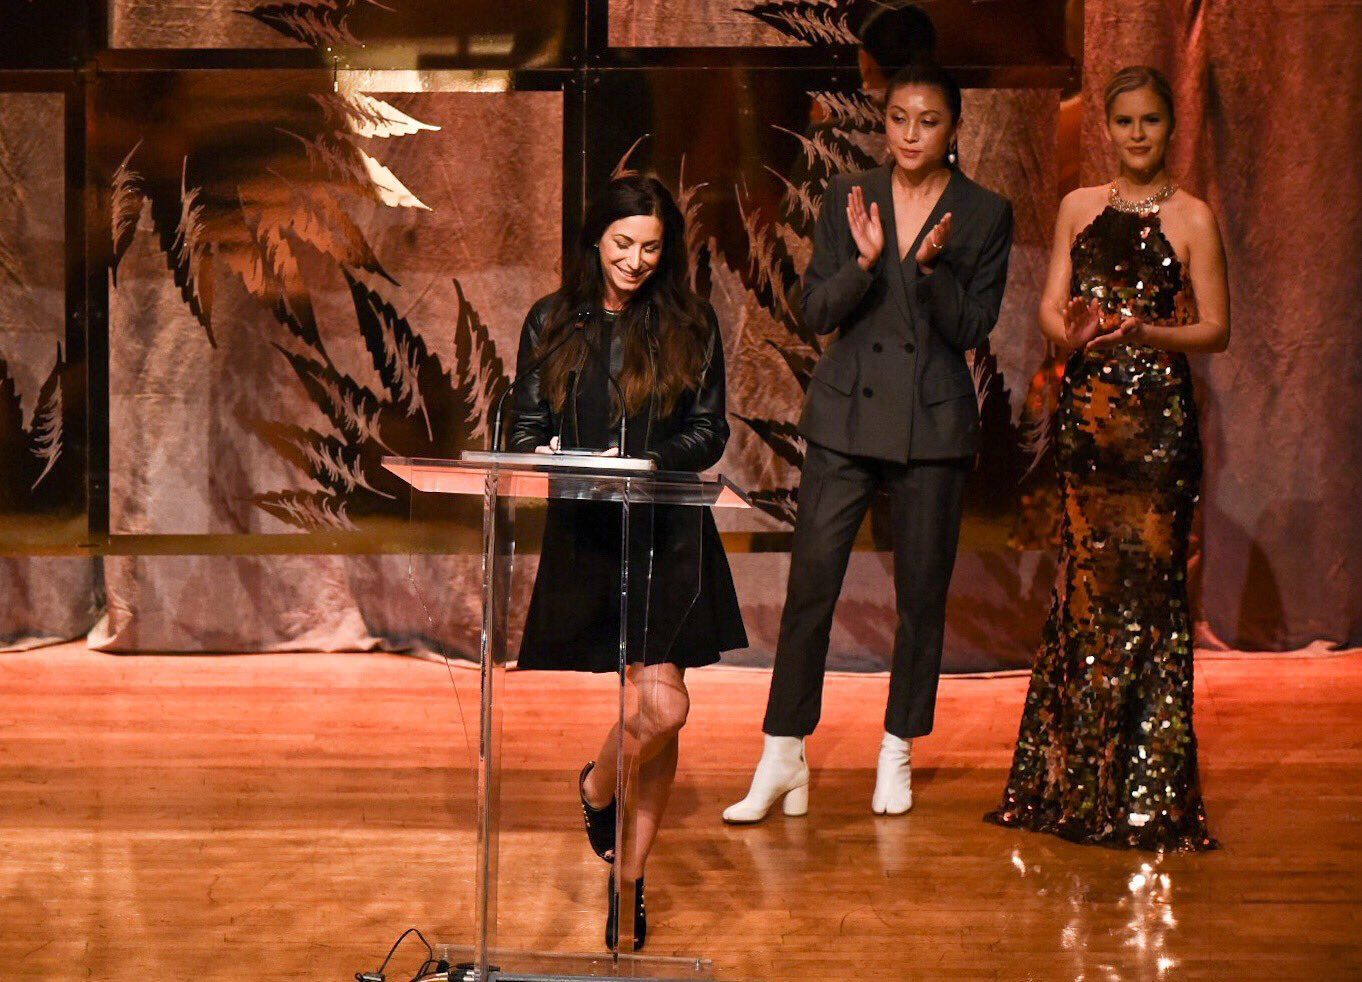 https://worldclassextractions.com/wp-content/uploads/2019/01/canadian-cannabis-awards-lift-and-co_rosy-mondin-women-in-weed_trailblazer-2018.jpg